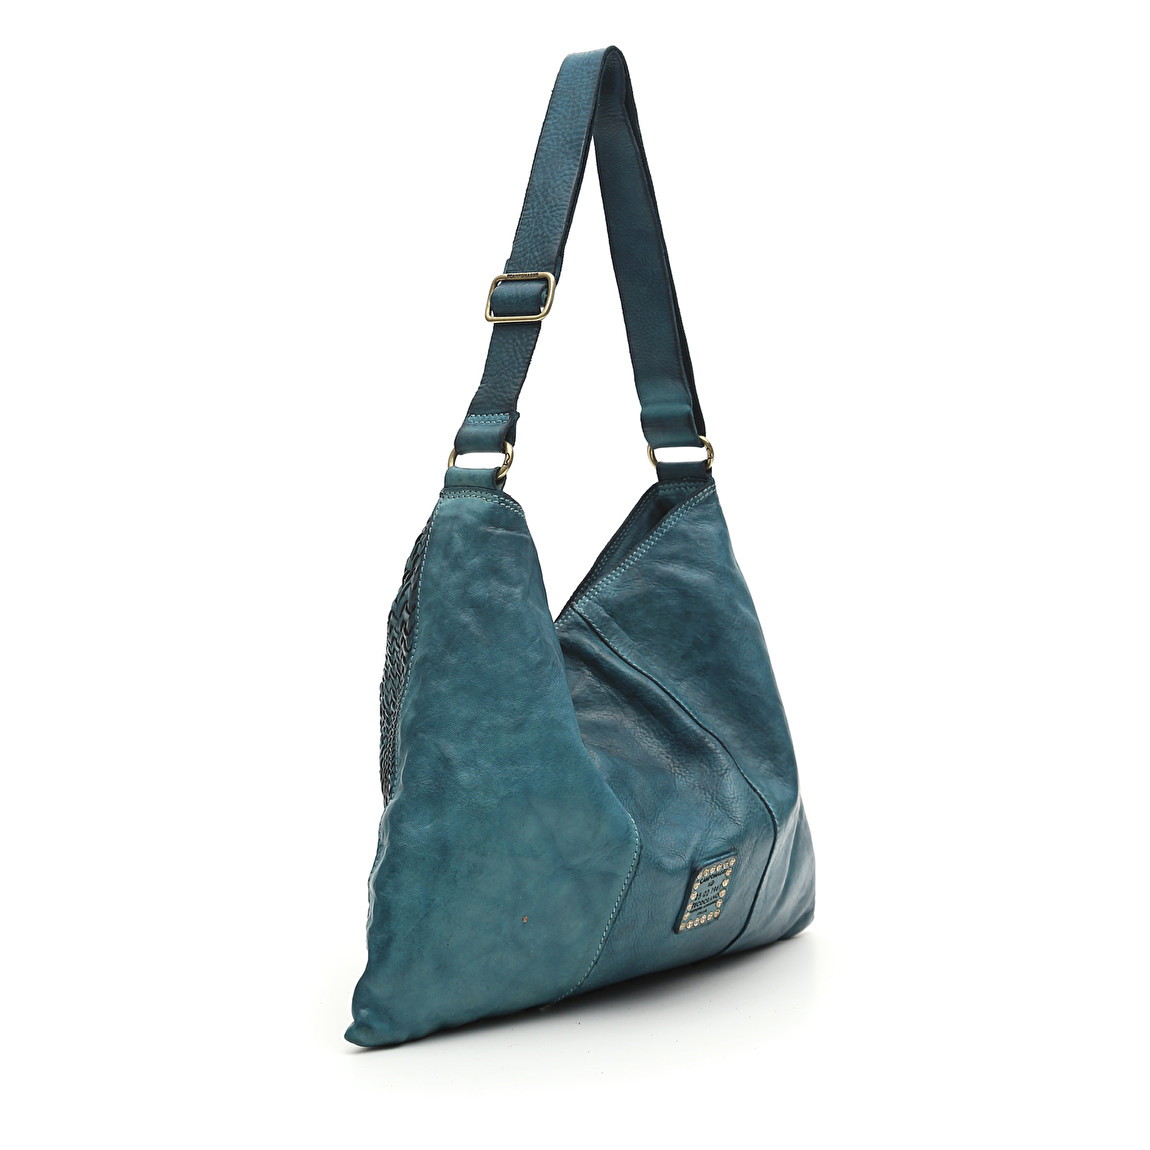 334b6b75cab9 Bag in aviation blue whitened leather and weaving Edera — LA LONDON